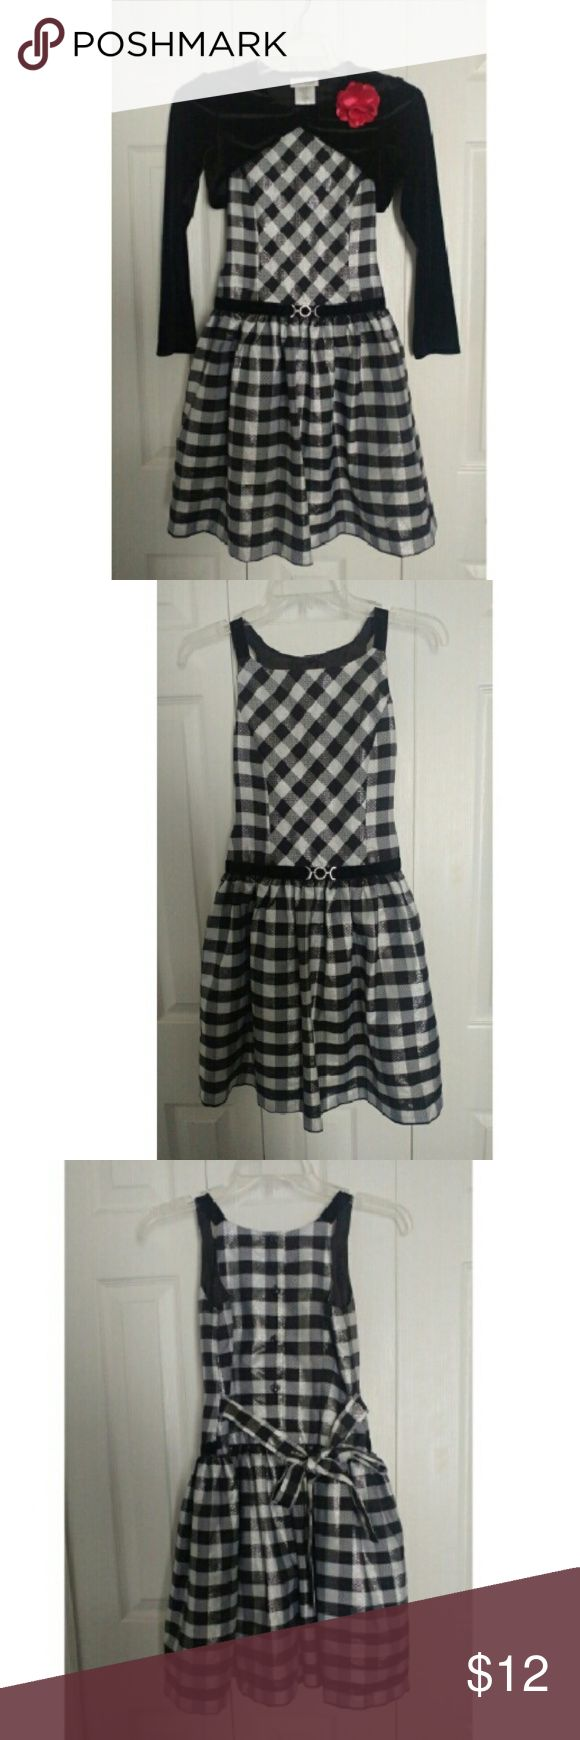 Black and white dress for kids Black and white dress for girls between 9 to 10 years old in great condition, only wore it once on christmas. Dresses Formal